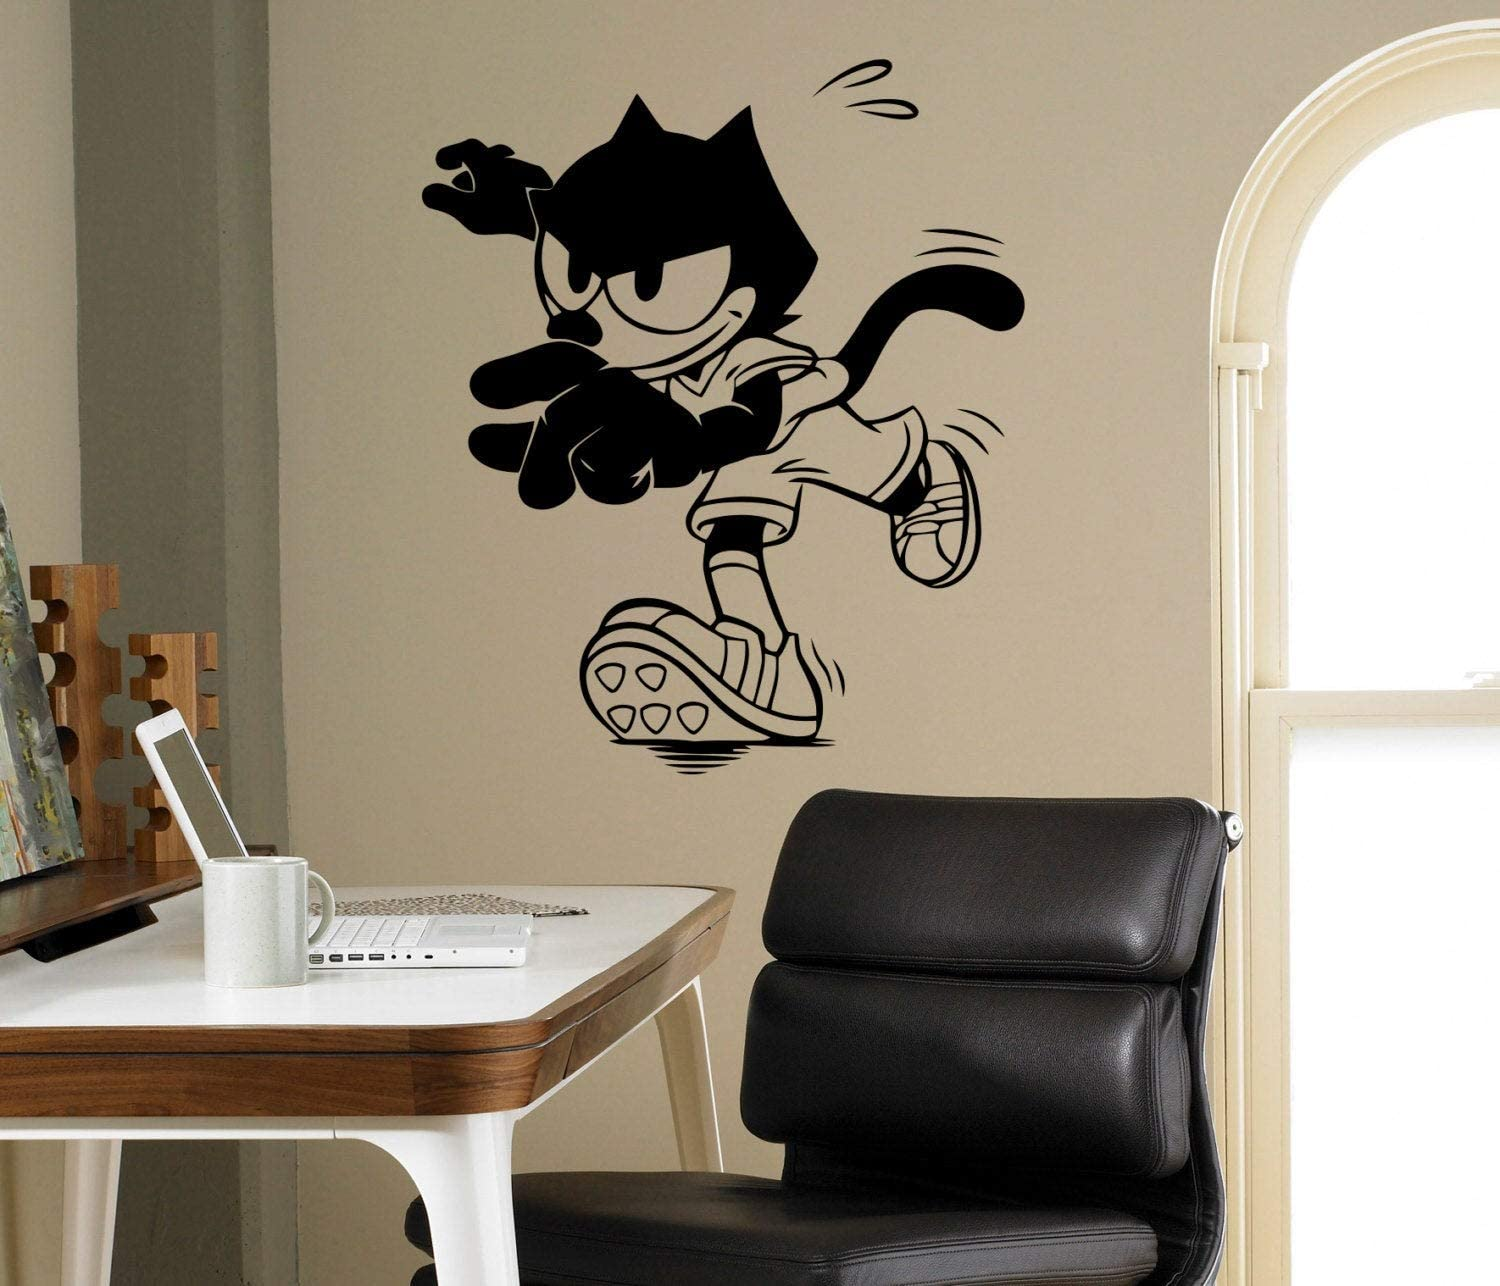 Place Felix Cat Vinyl Decal Comics Character Wall Sticker Funny Animal Home Interior - Kids Children Room Decor - Removable Stickers Made in USA - 12x15 Inch